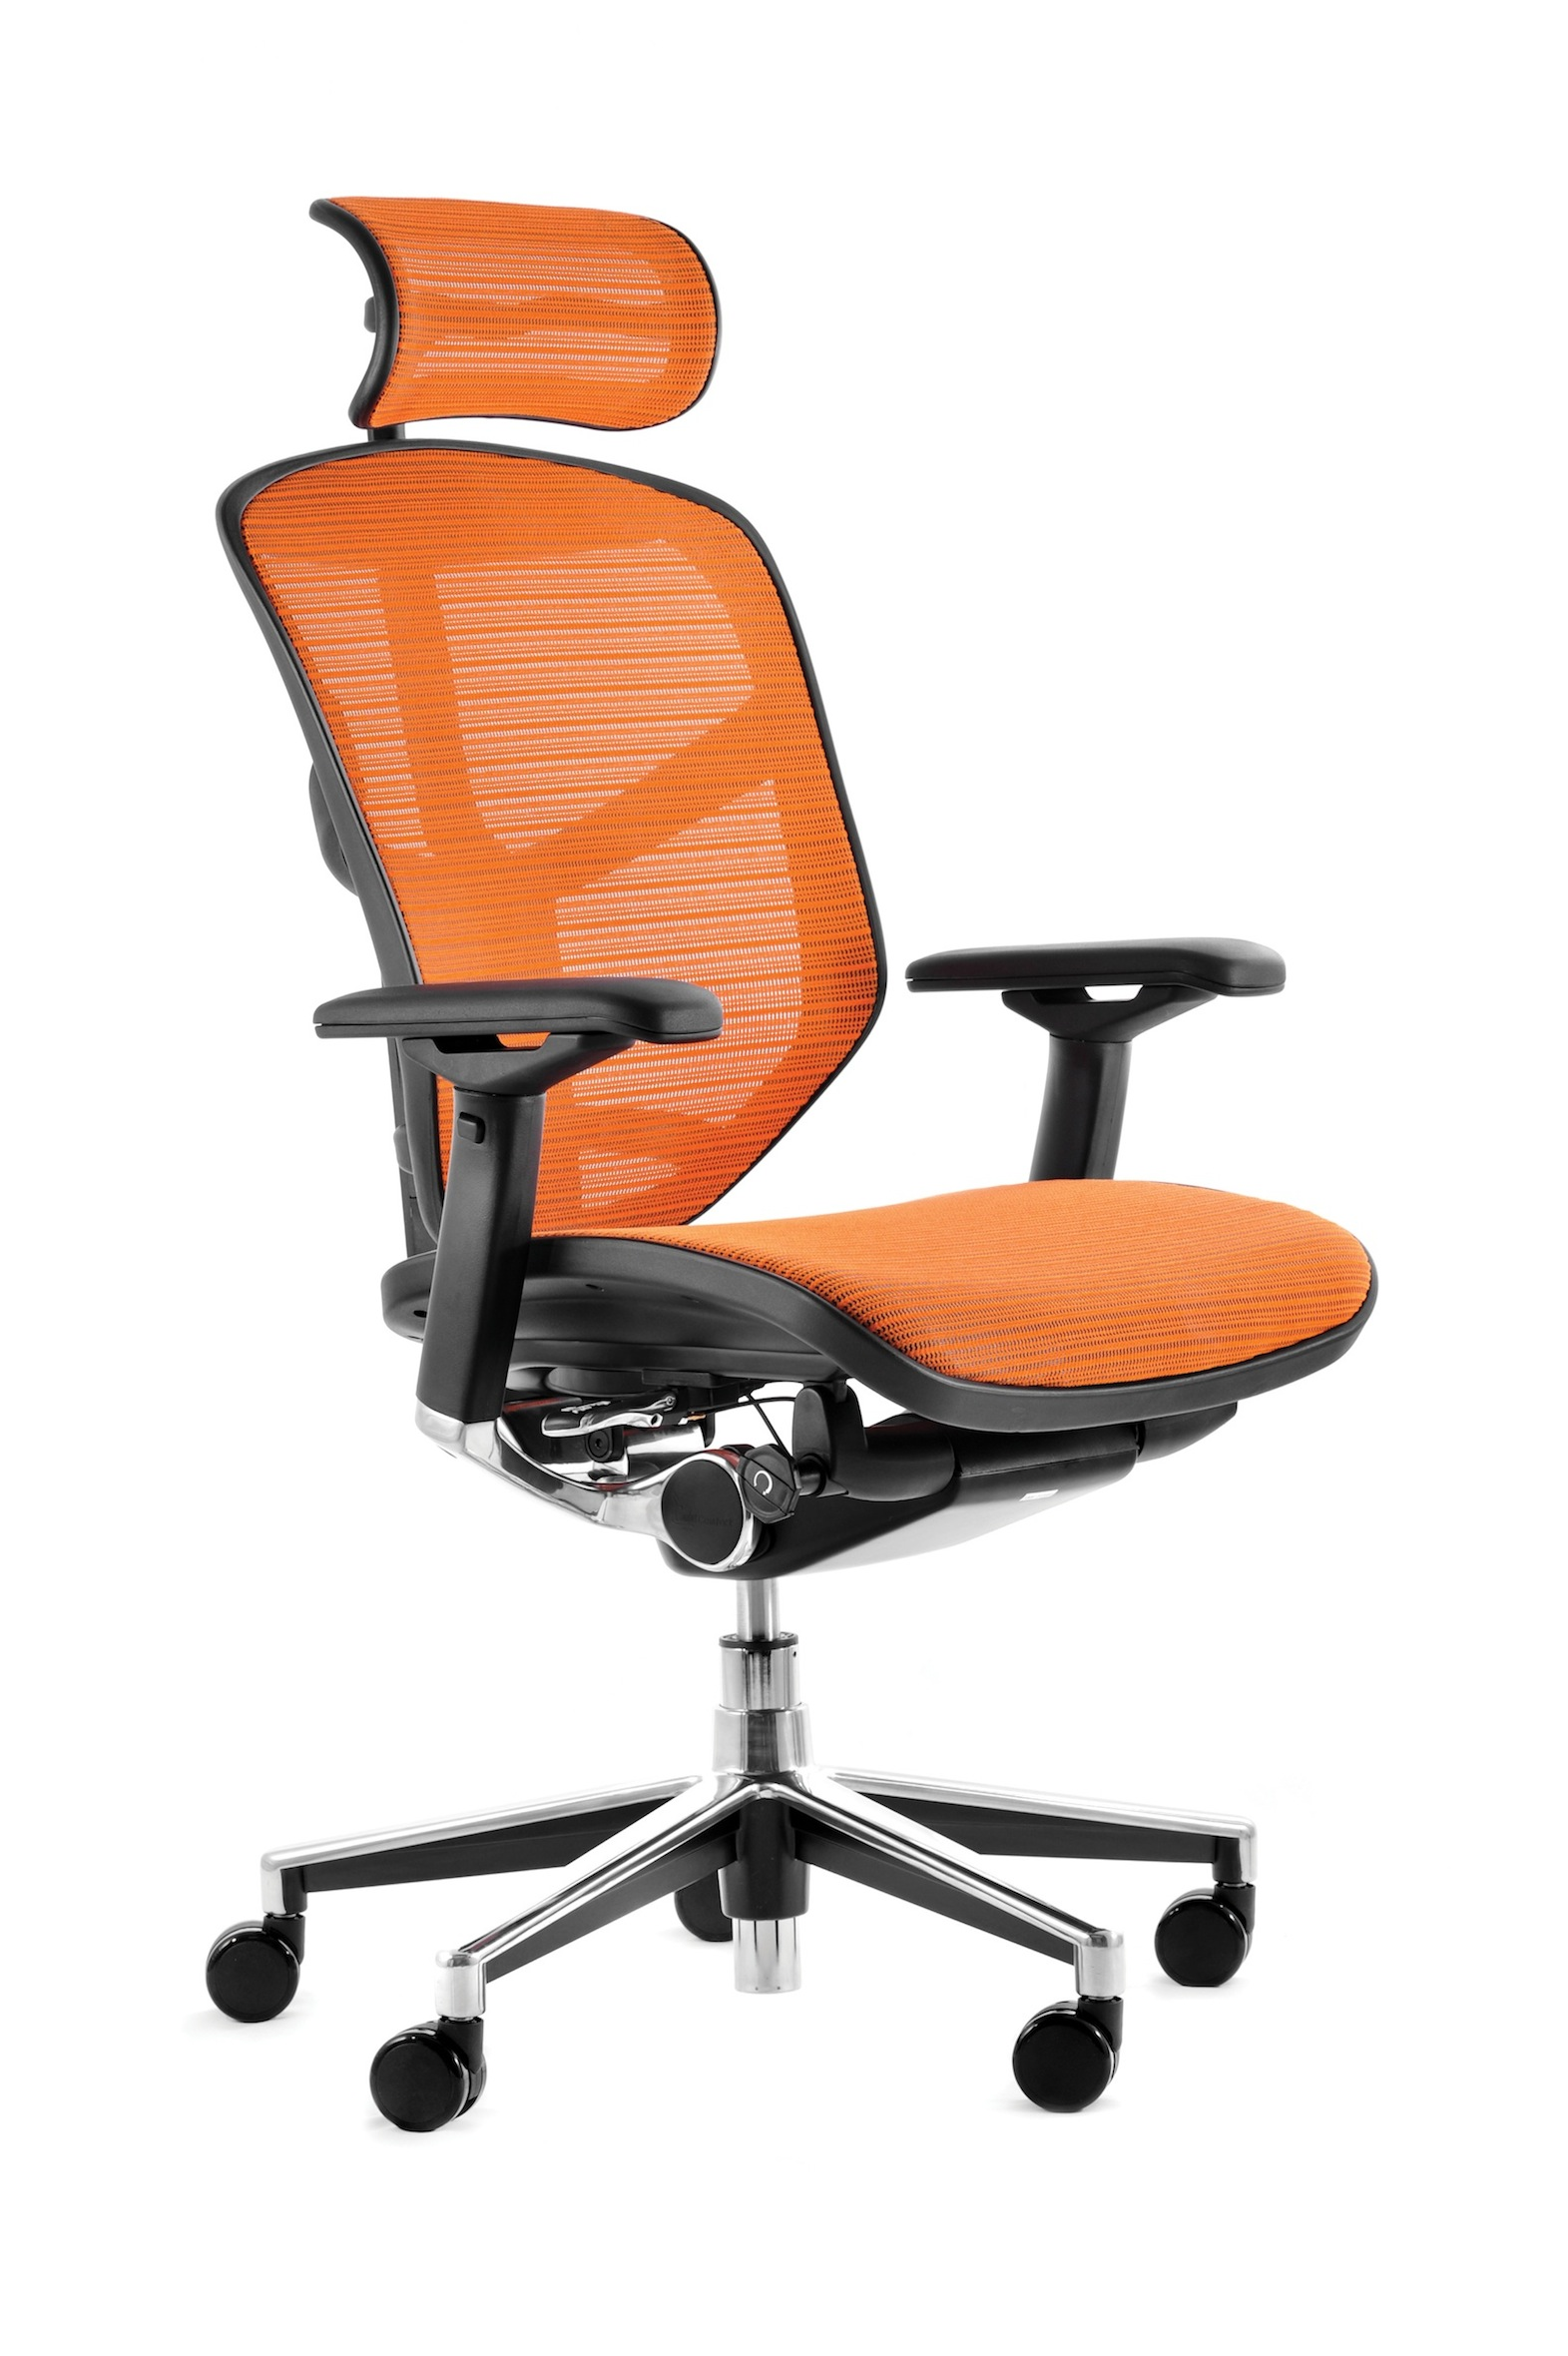 stylish desk chairs recyclable eco friendly and stylish office seating 26920